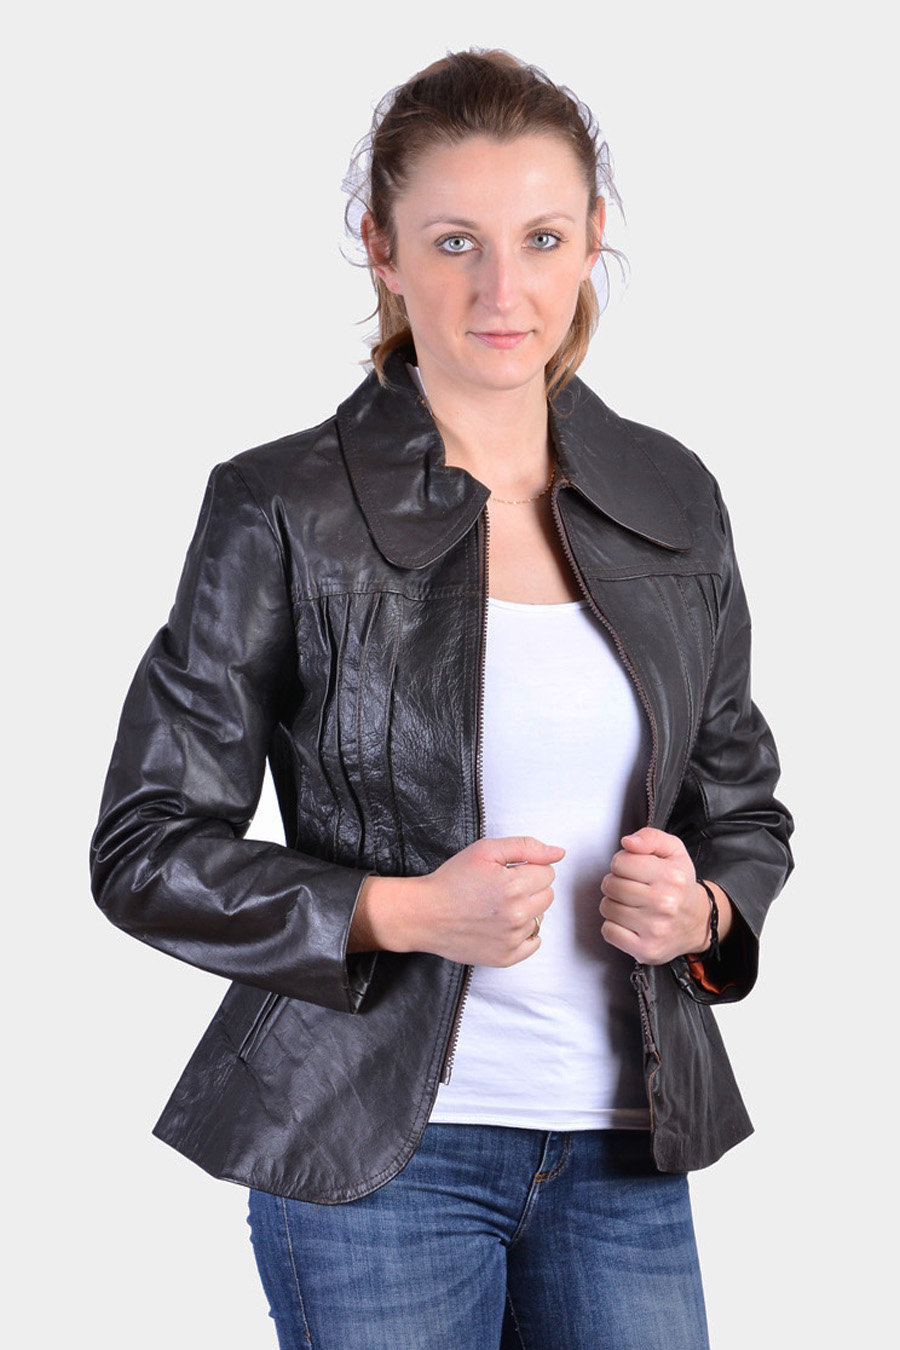 Women's 1970's leather jacket